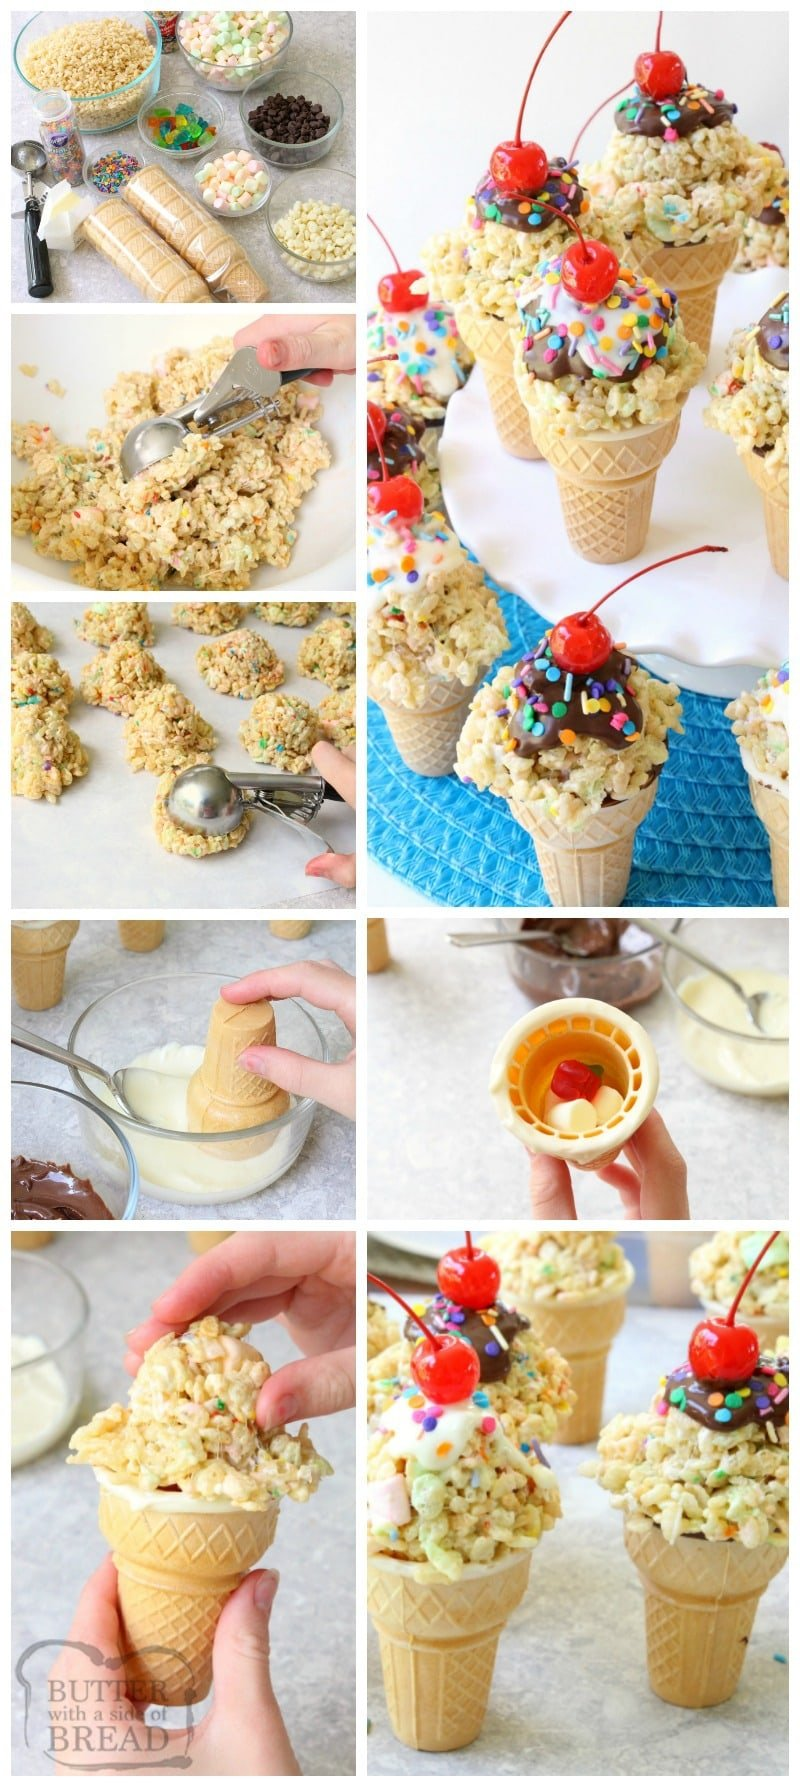 Rice Krispie Ice Cream Cones are easy to make & super cute too! Gooey marshmallow treats topped with melted chocolate, sprinkles & a cherry make these cute cones amazing. Bonus too- they each have a special treat inside the cone!